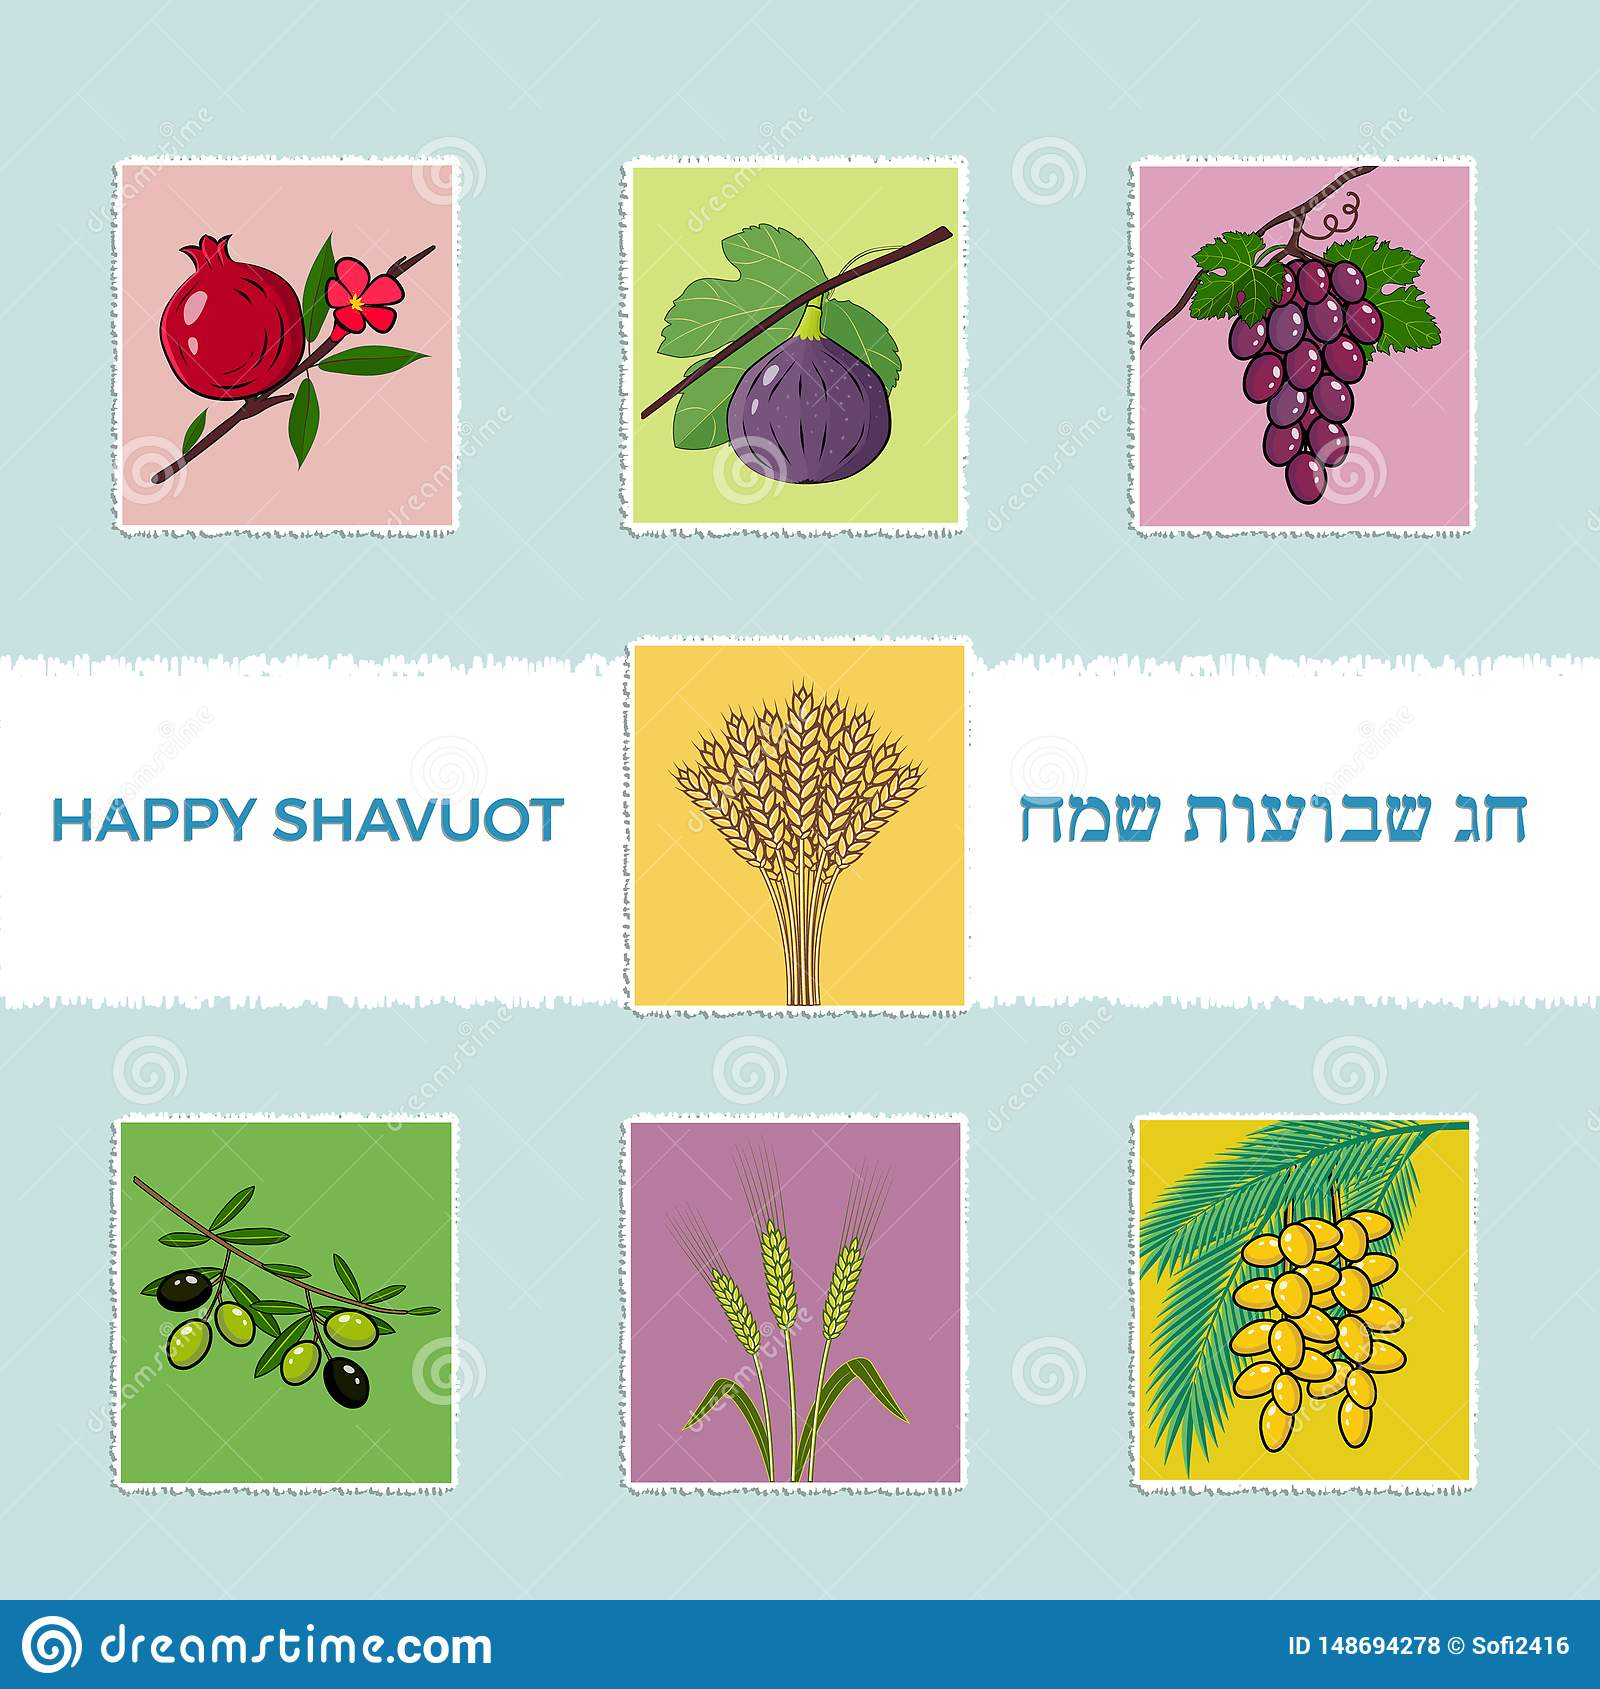 Shavuot Jewish holiday greating card, banner with seven traditional species. Happy Shavuot in Hebrew